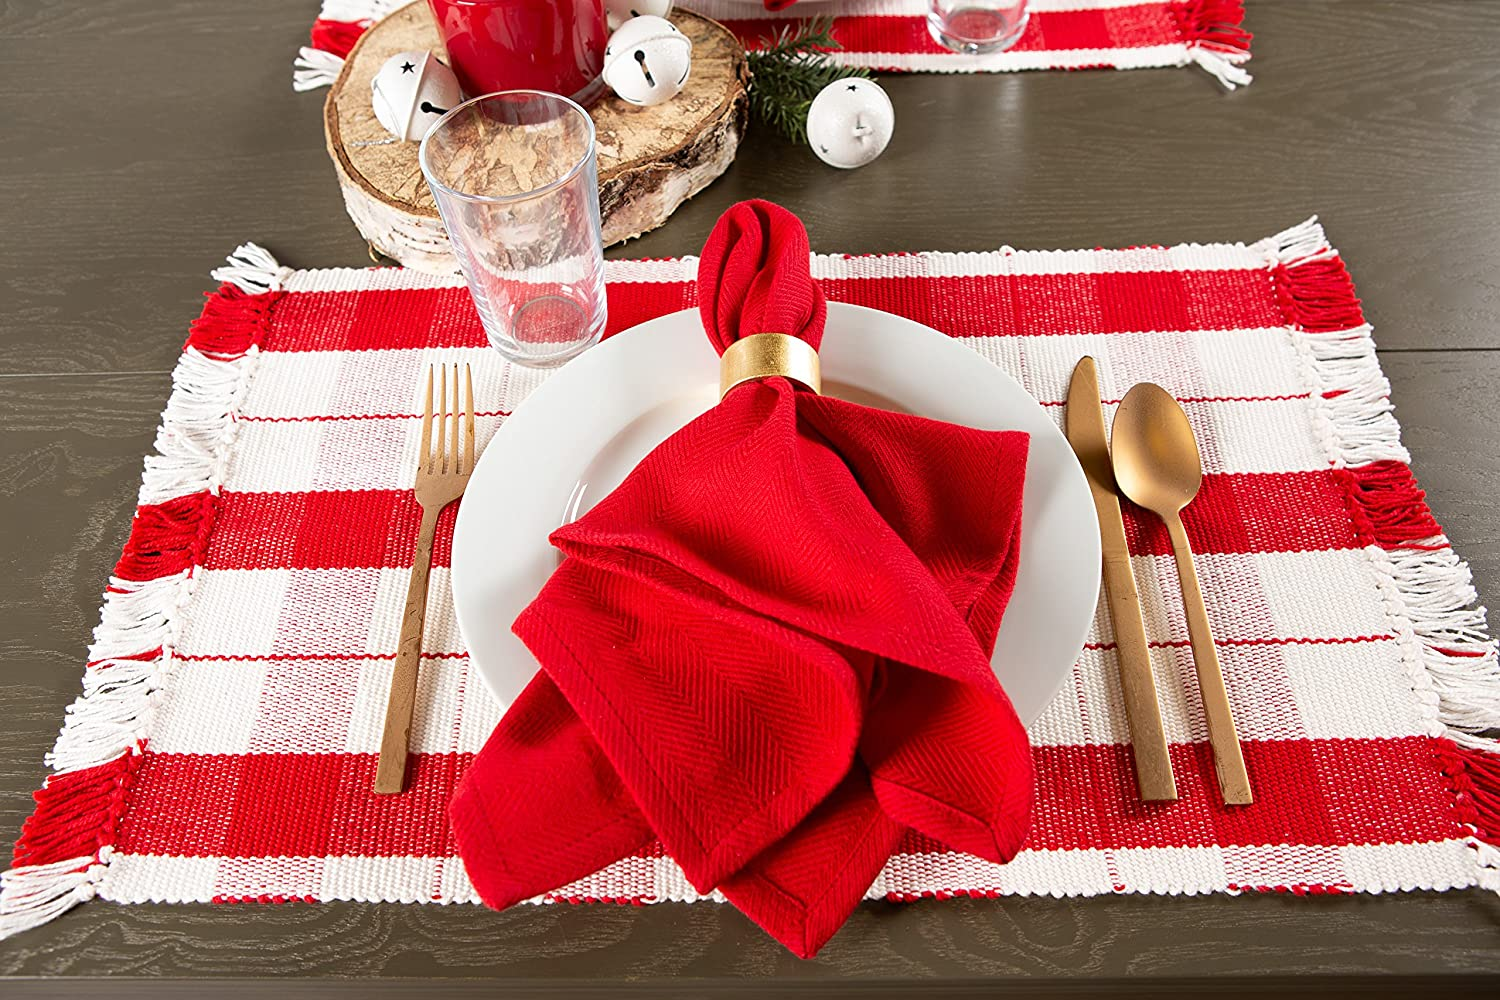 Dii 14x72 Cotton Table Runner Joyeux Noel Perfect For Dinner Circuit Scribe Conductive Ink Basic Kit Electroninks Cskitbasic Parties Christmas